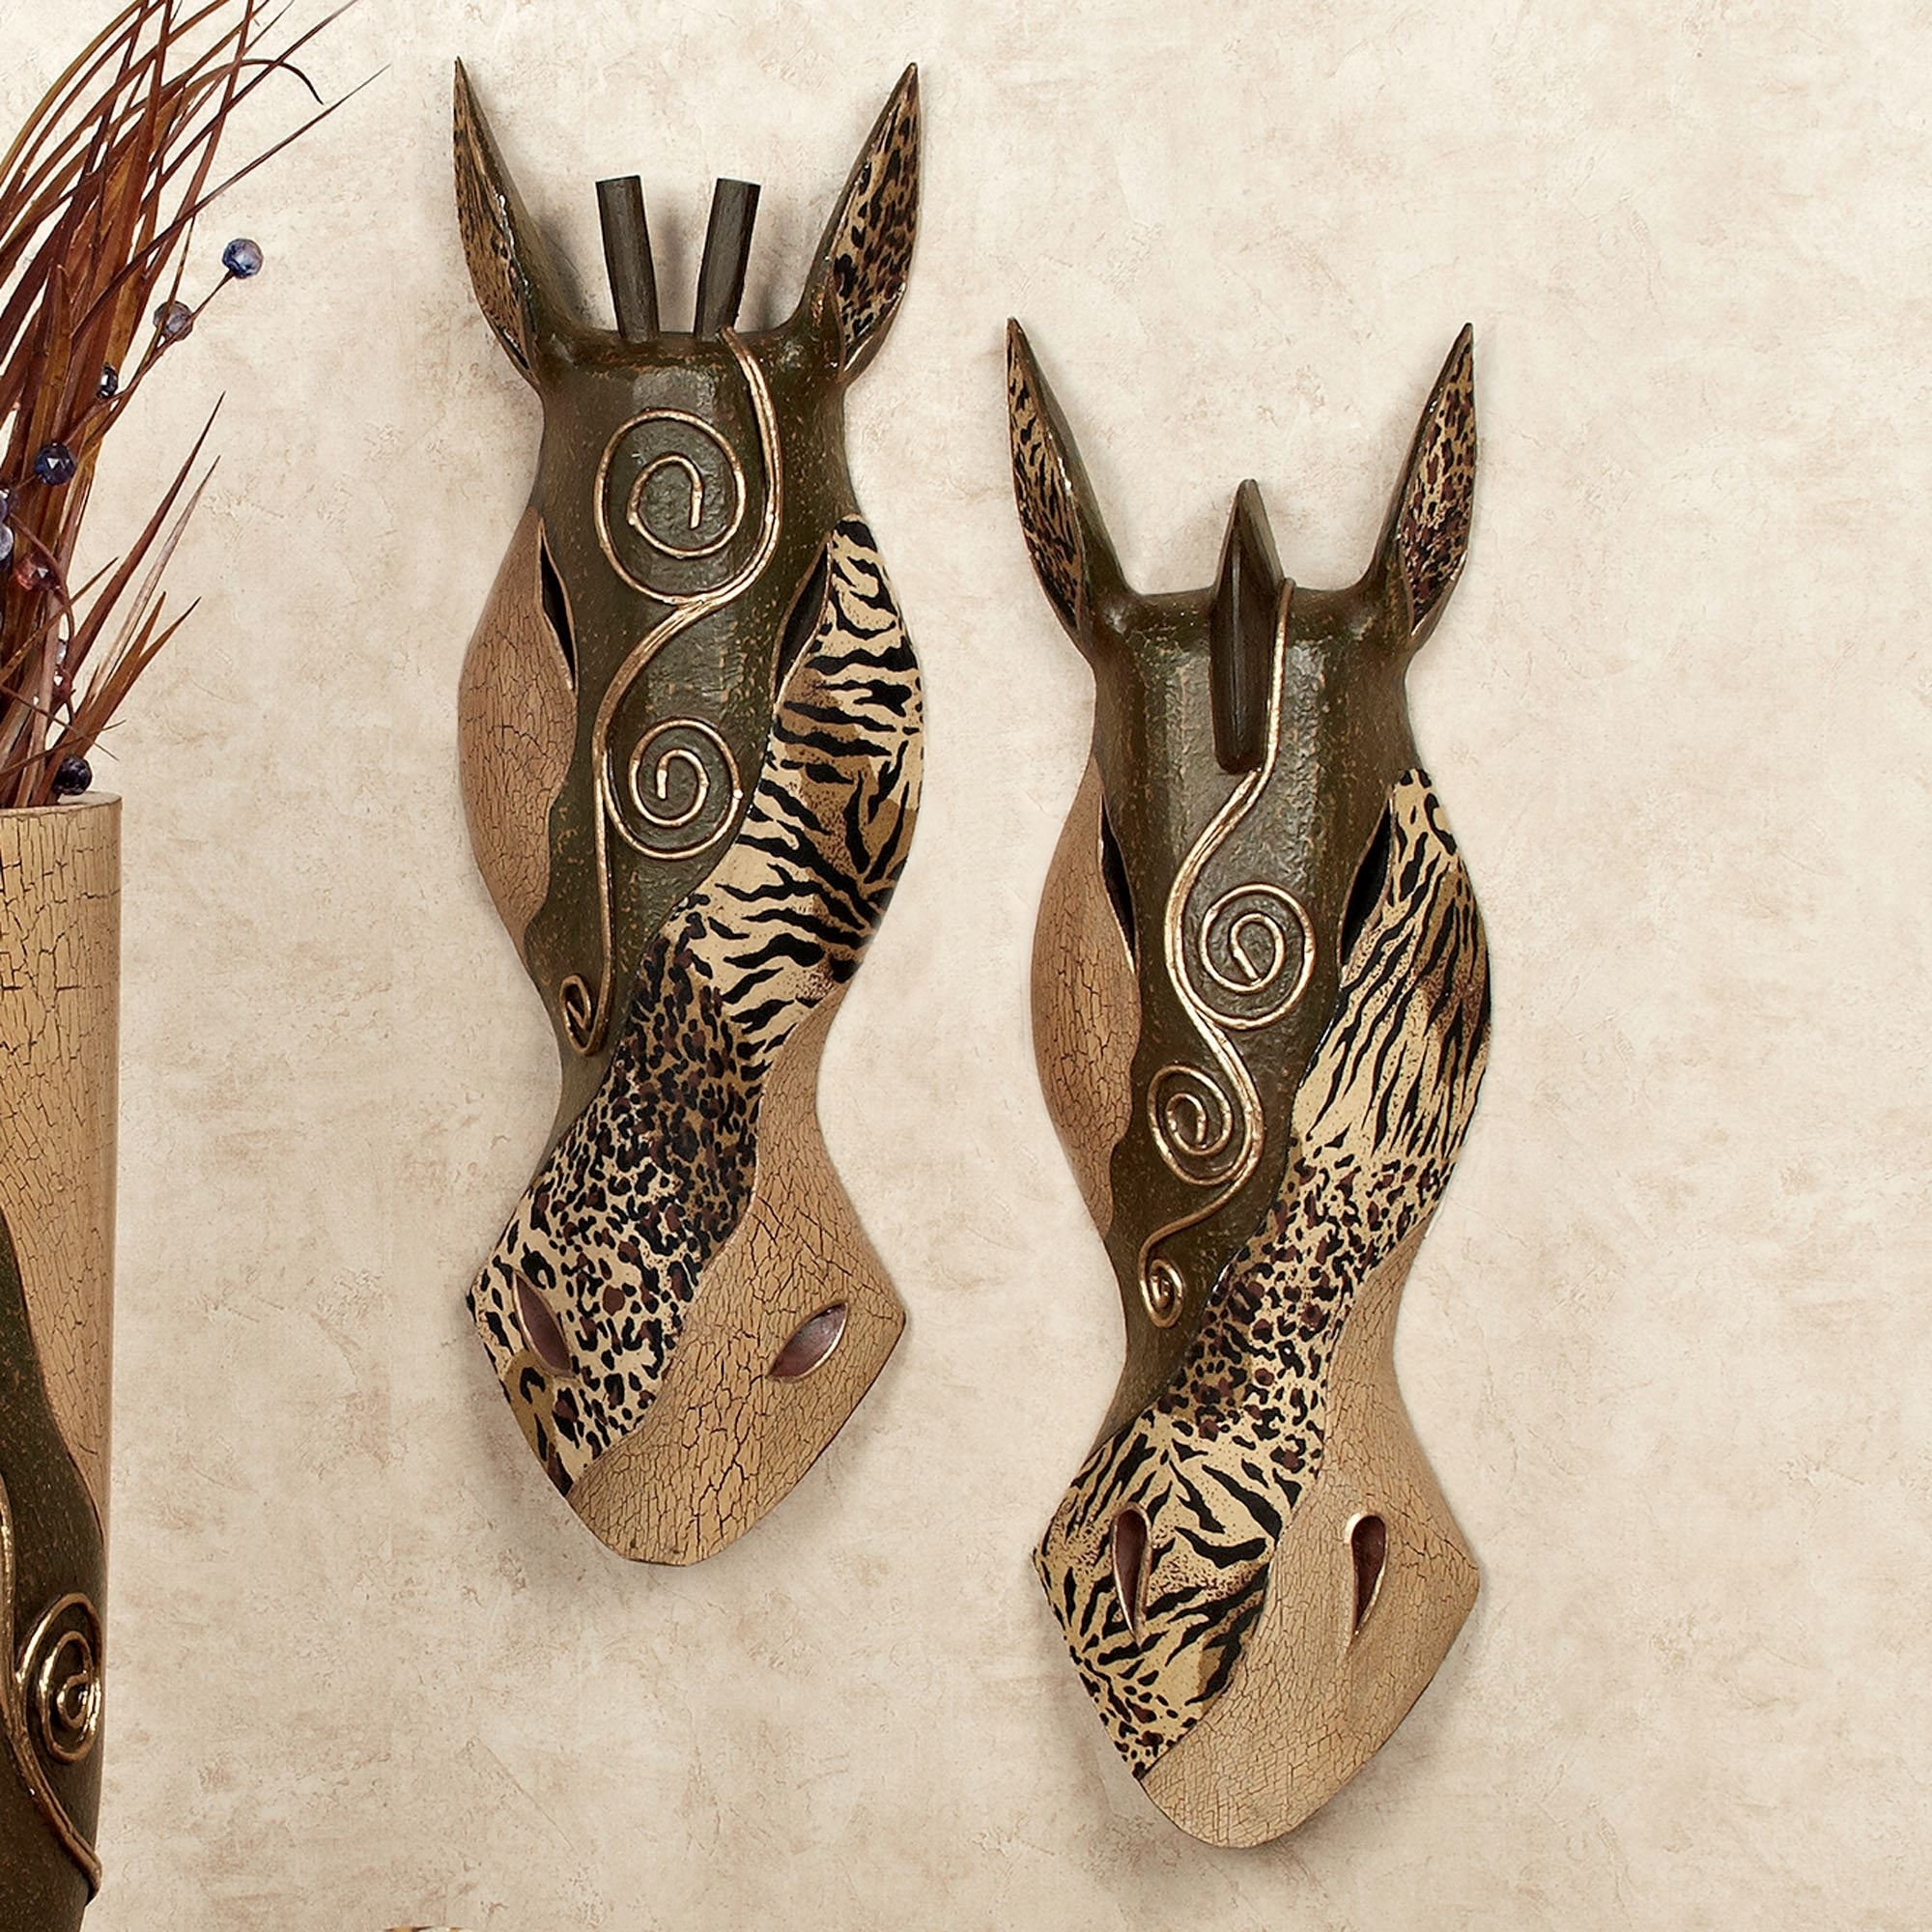 Touch Of Class Pertaining To African Wall Accents (Gallery 7 of 15)